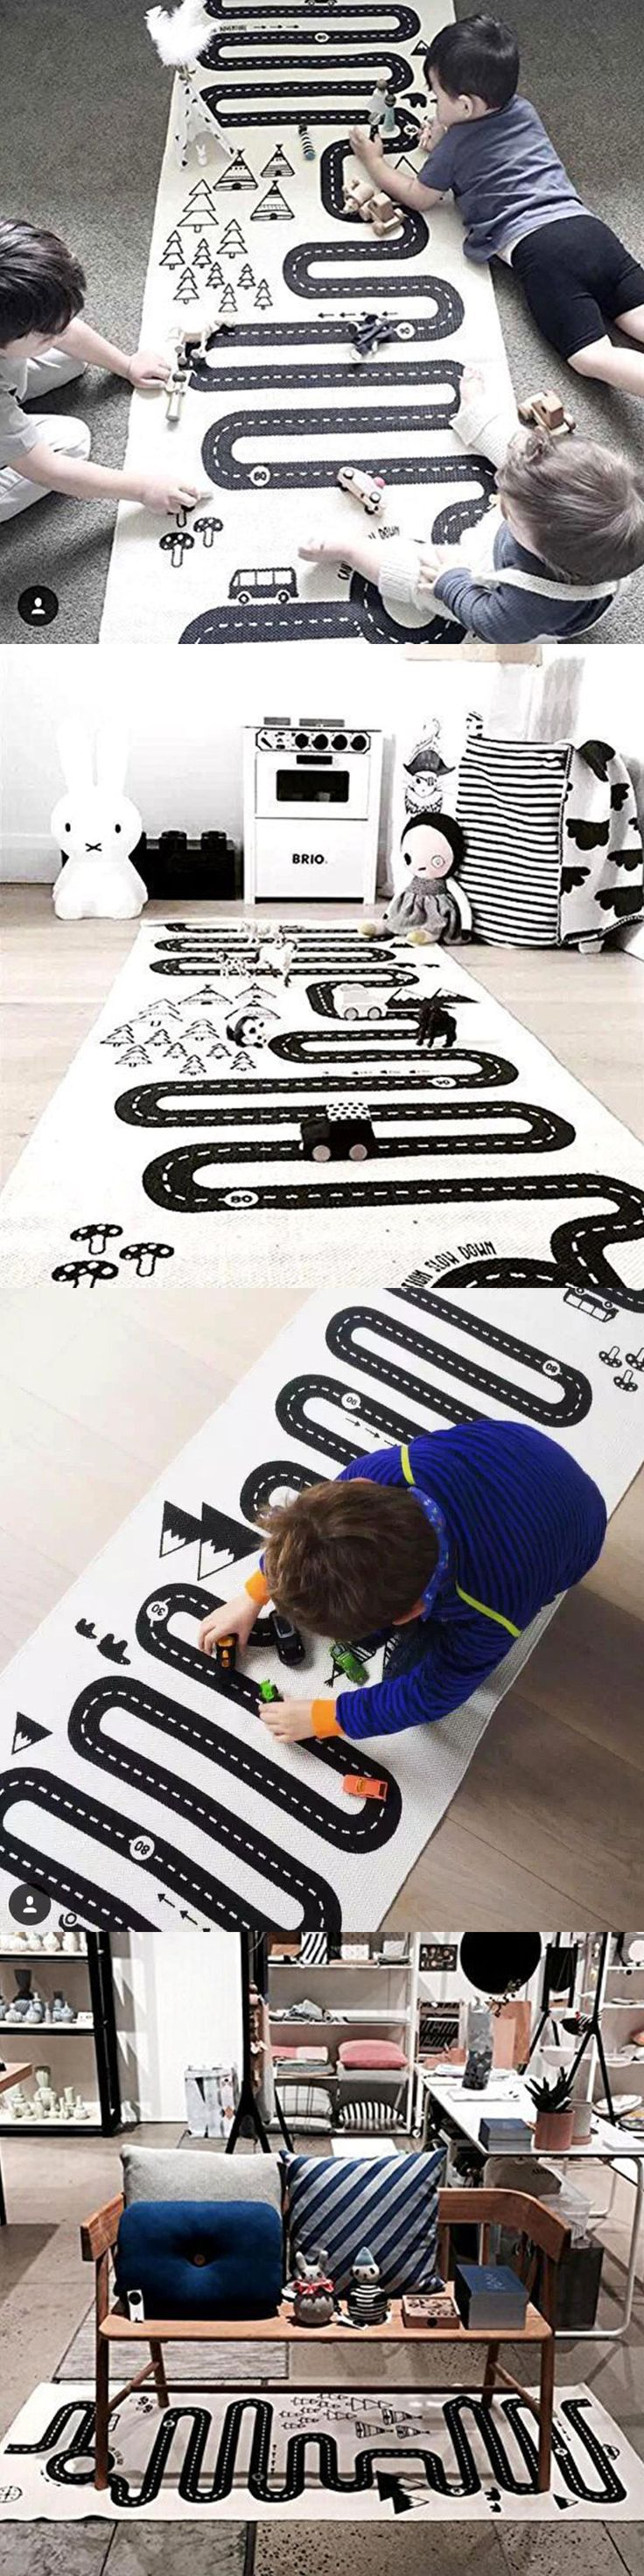 Kids Rugs: Kids Play Rug Cotton Children Road Room Girls Boys Mat Area Bedroom Carpet BUY IT NOW ONLY: $41.96 #priceabateKidsRugs OR #priceabate